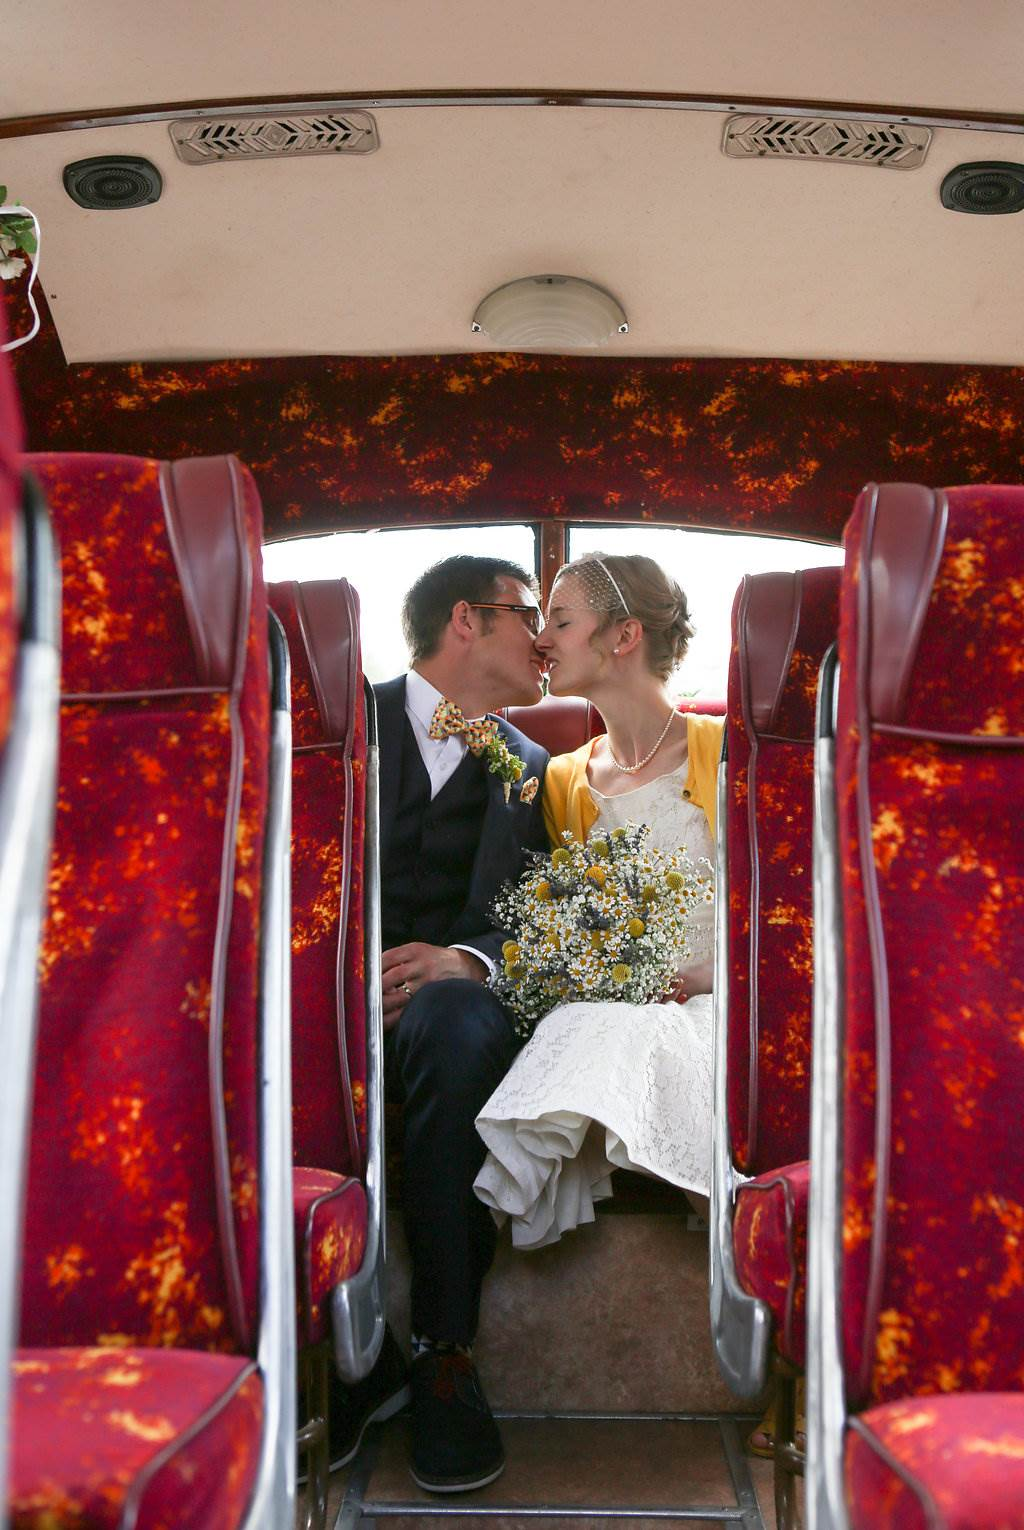 Maria and Dans DIY vintage wedding photographed by Bethan Haywood Jones as featured on The National Vintage Wedding Fair blog